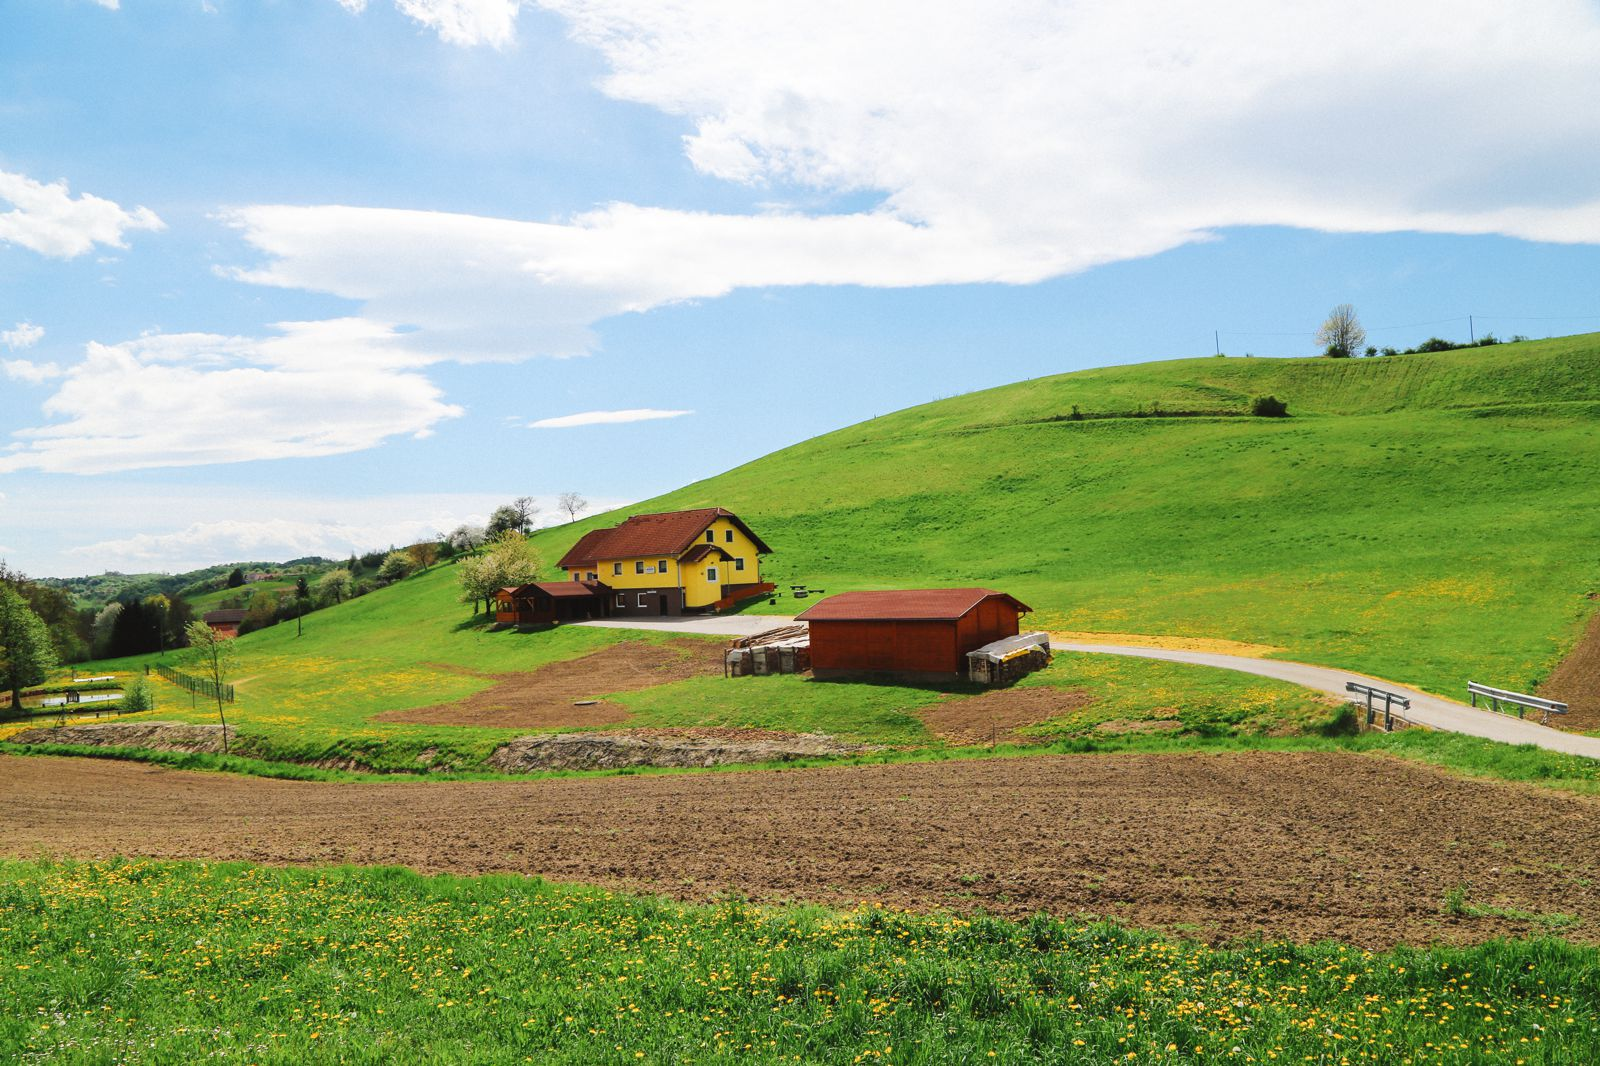 There's A Big Reason You Should Visit Slovenia This Year - The Wine! (67)